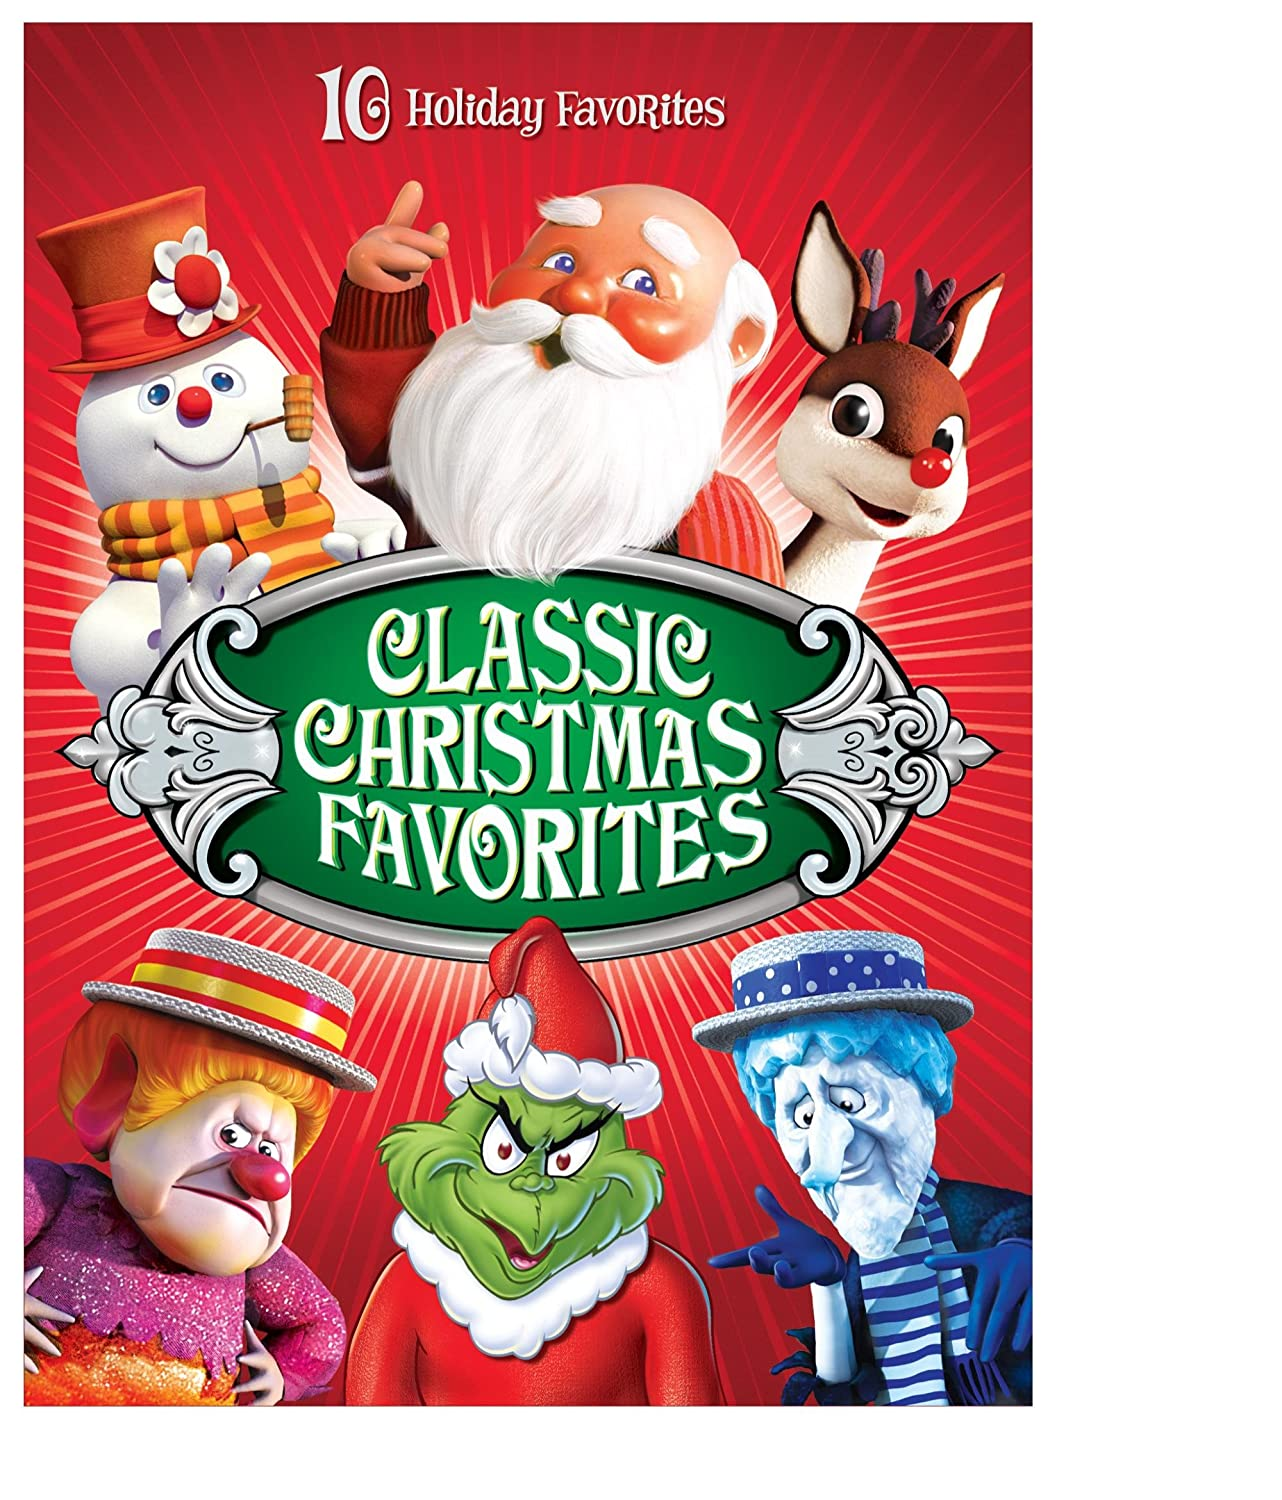 Amazon.com: Classic Christmas Favorites: Various: Movies & TV